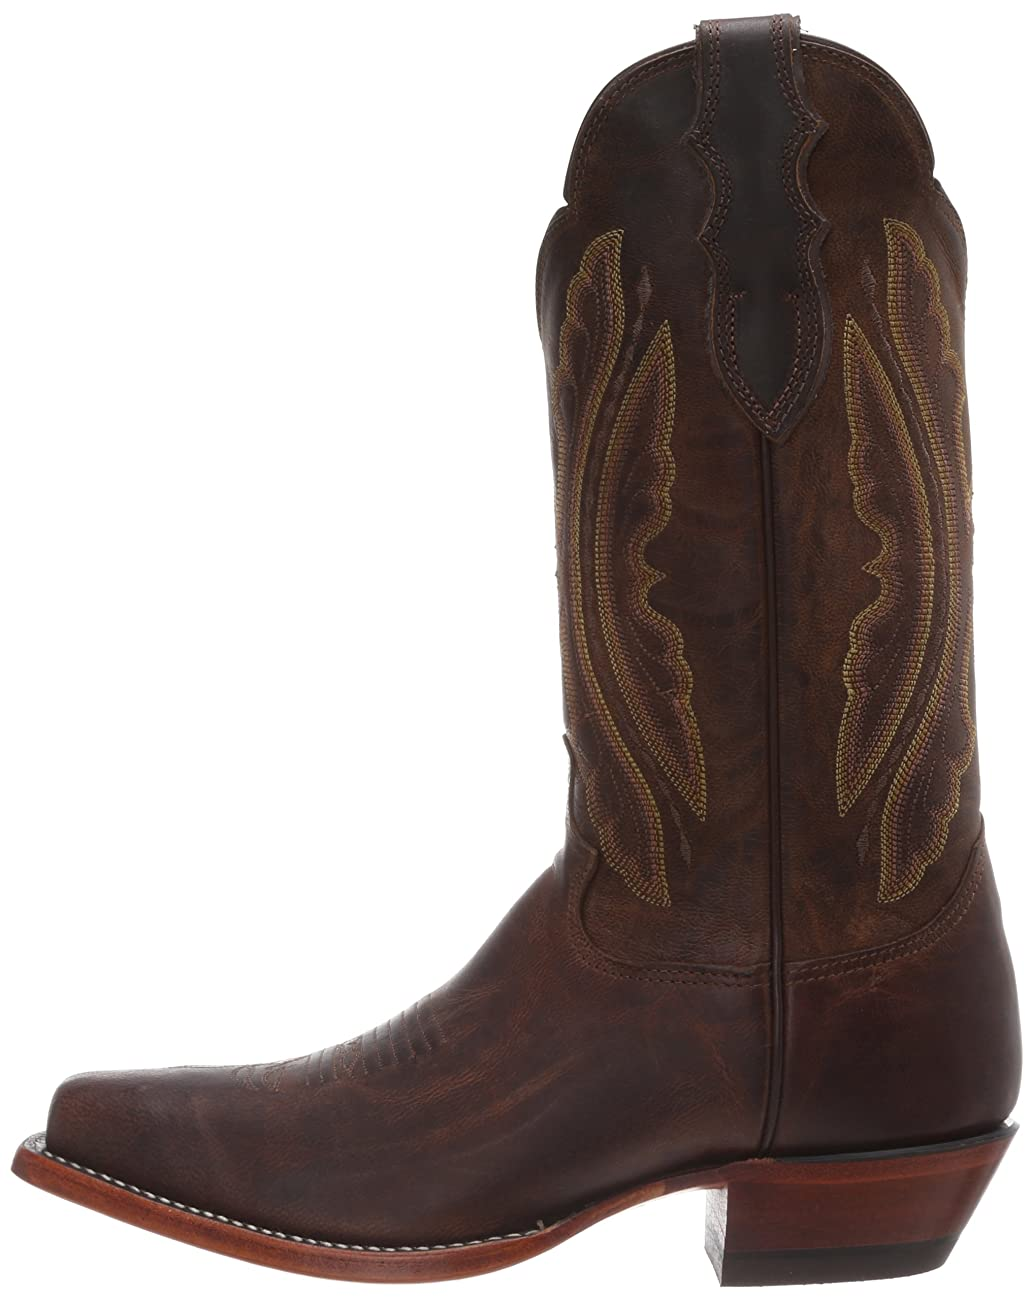 Justin Boots Men's Classic Western Boot 6